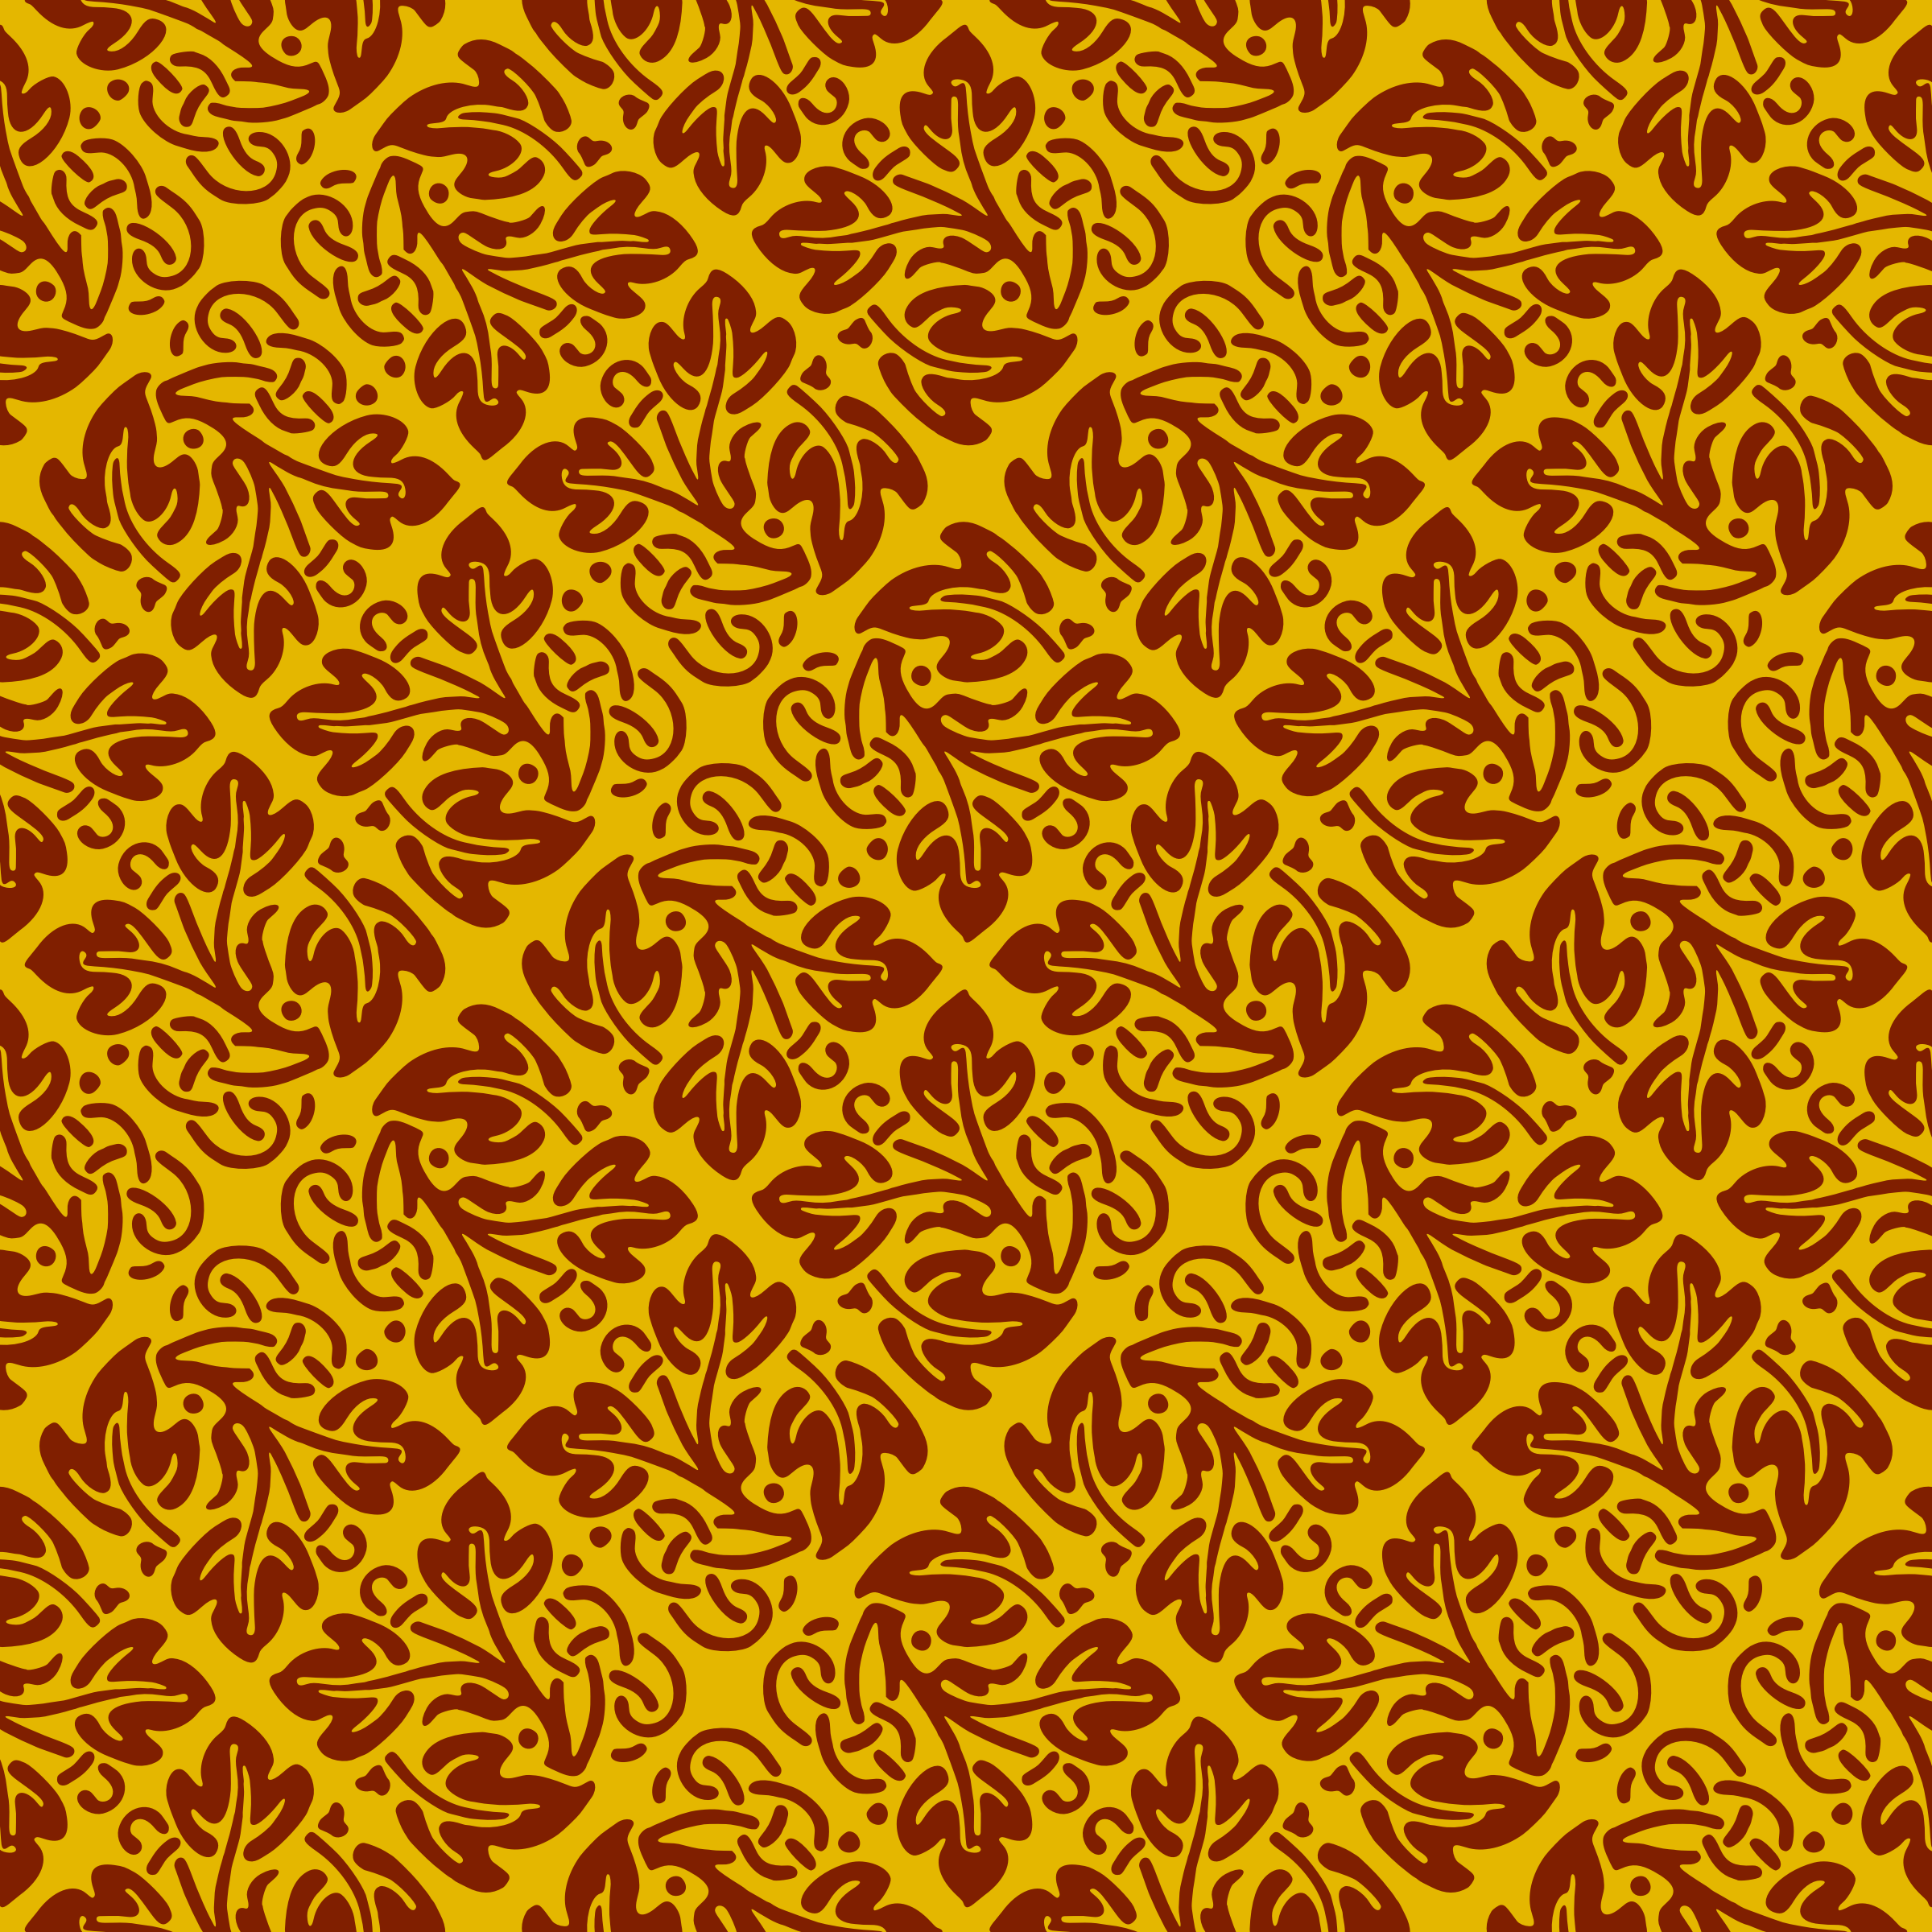 Background pattern 172 (colour) by Firkin